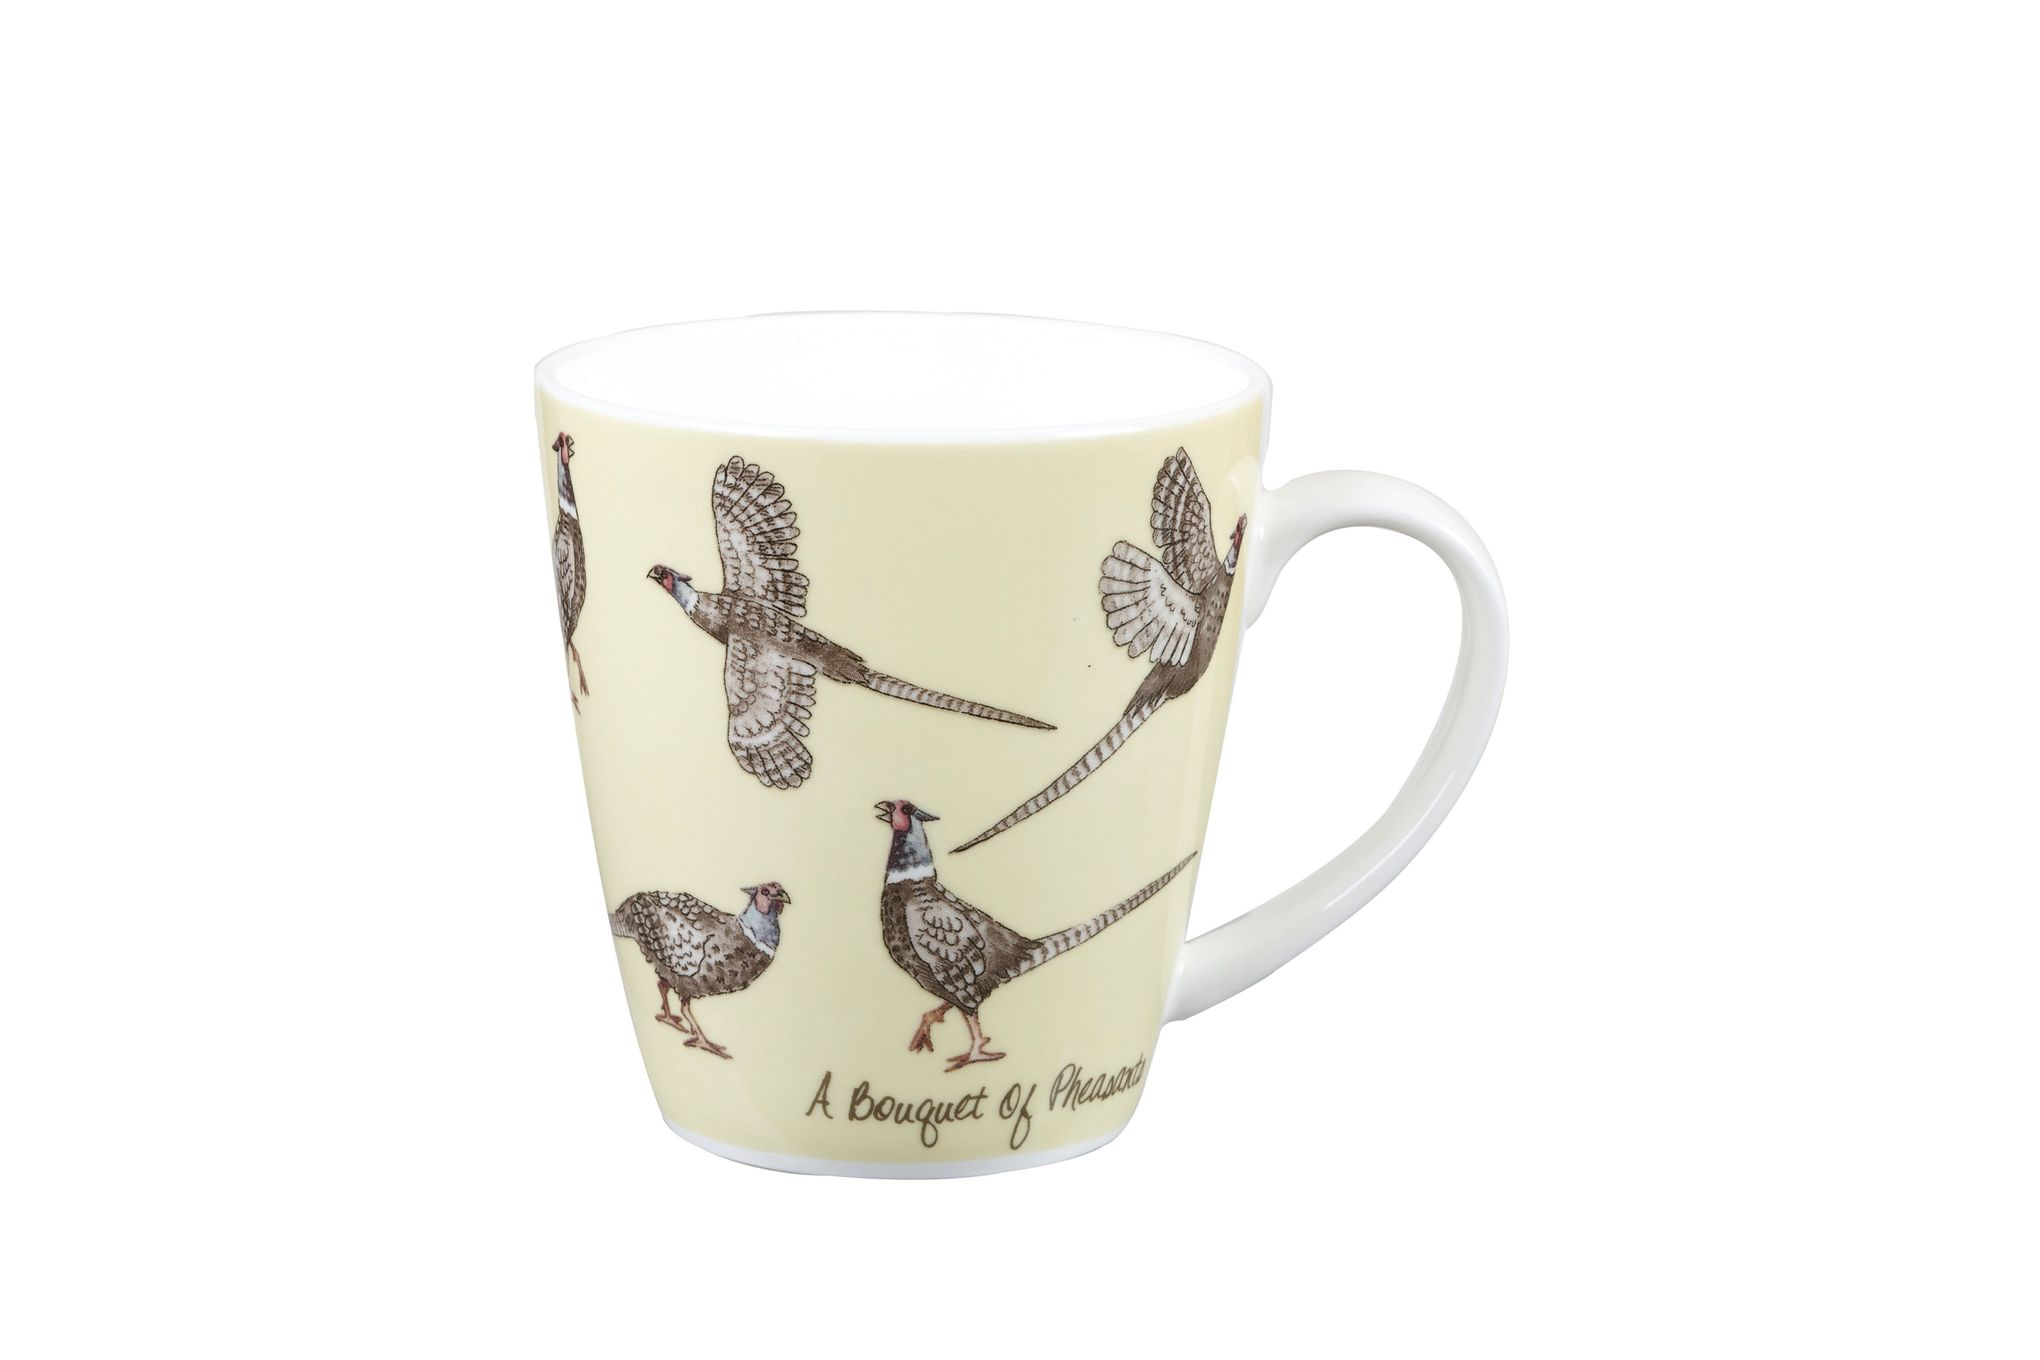 Churchill The In Crowd Mug Pheasants Gift Box 360ml thumb 2